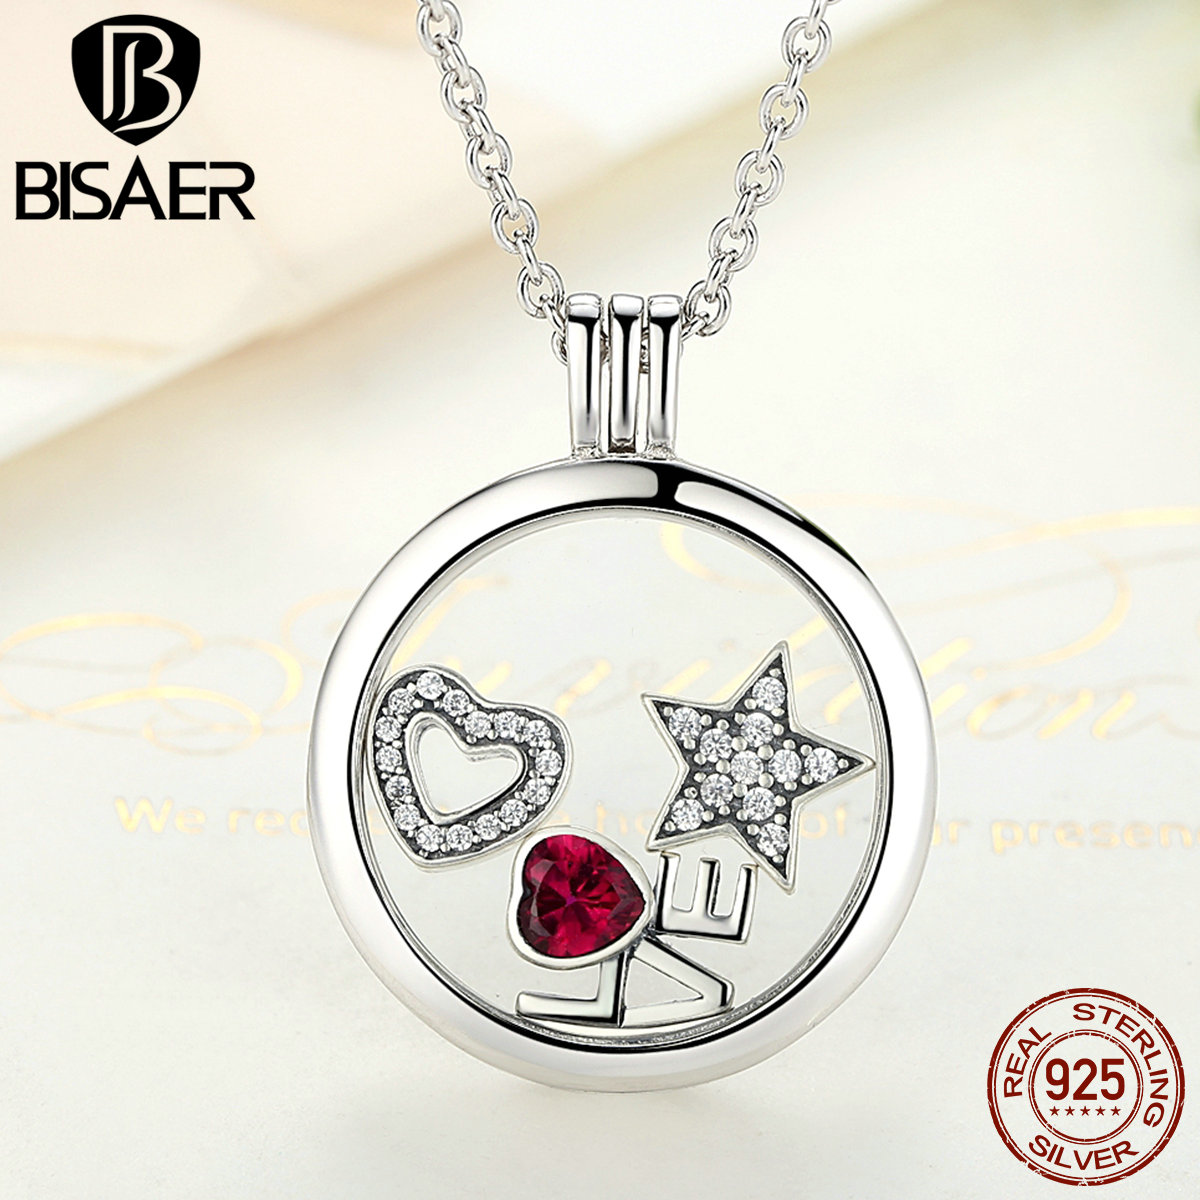 Memory Pendant Necklace Genuine 100% 925 Sterling Silver Medium Floating Locket Necklaces & Pendants Jewelry Making Accessories